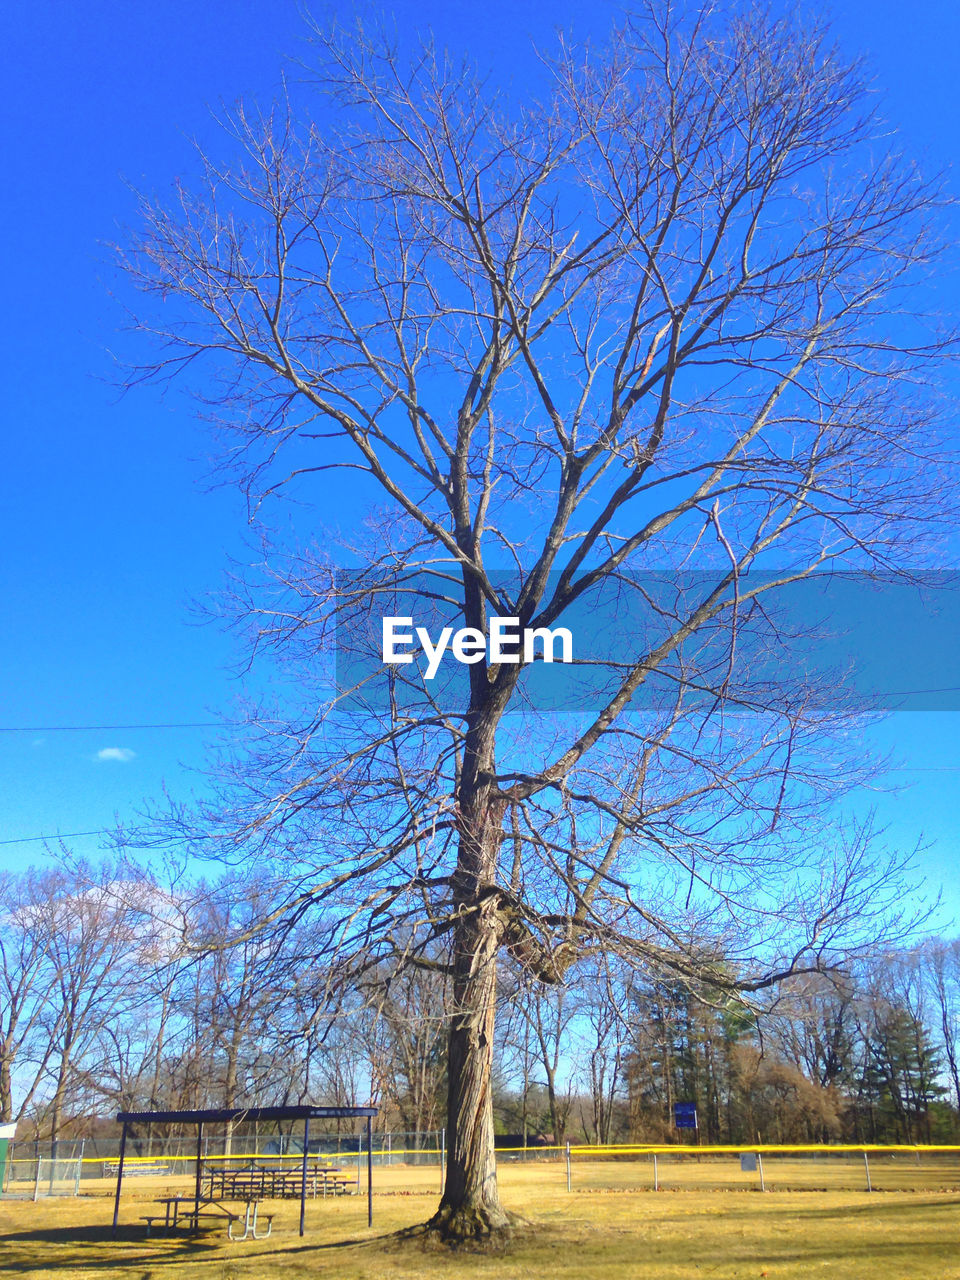 tree, plant, bare tree, blue, landscape, sky, tranquility, field, tranquil scene, nature, scenics - nature, land, no people, branch, environment, day, beauty in nature, clear sky, outdoors, non-urban scene